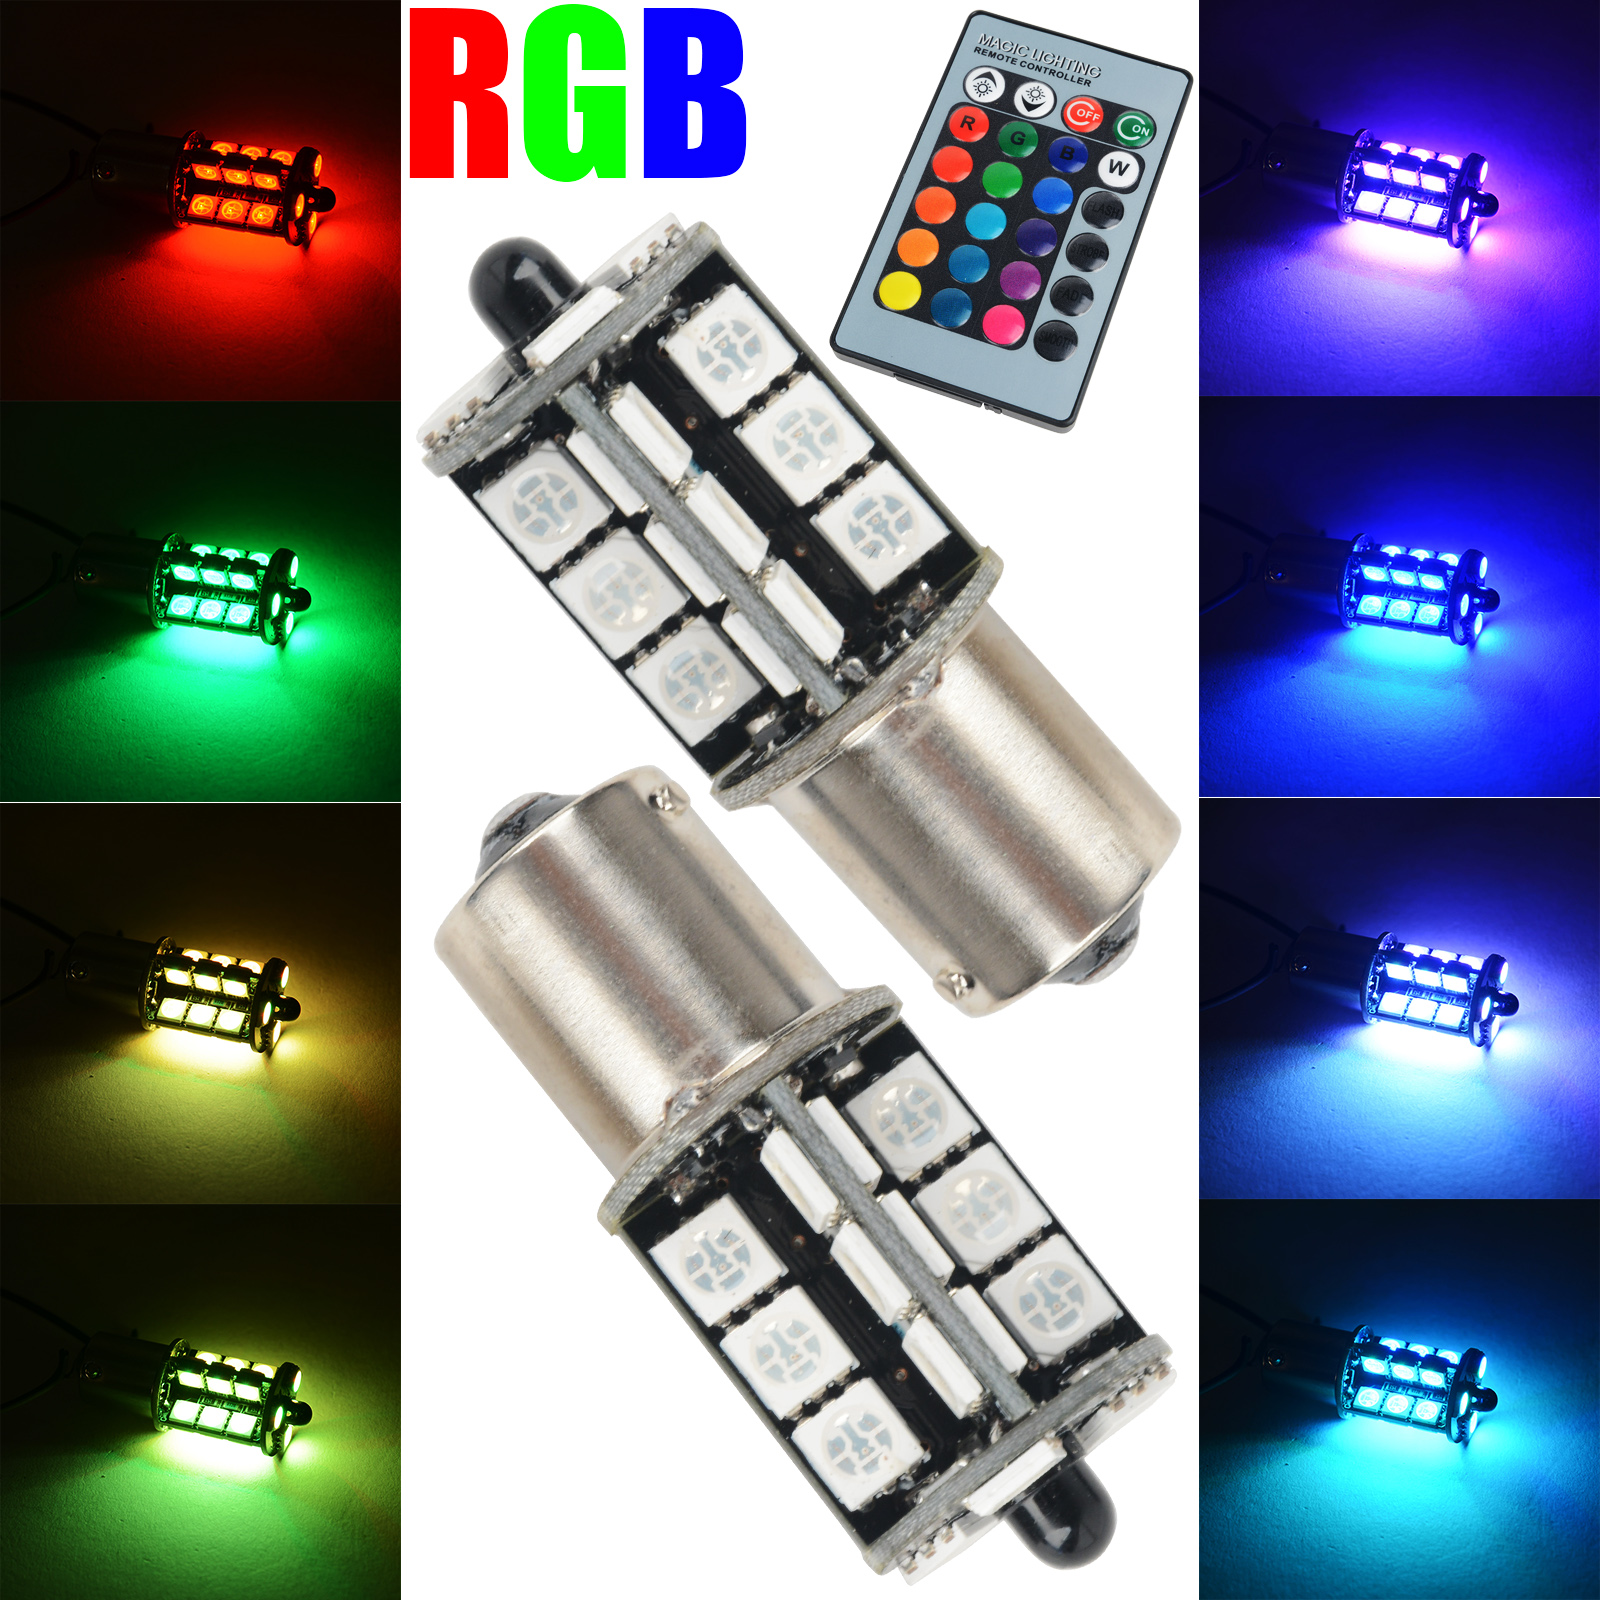 2PCS Multi-Color RGB LED Bulbs Wireless 1156 5050 27 SMD LED Decoration DRL Fog Daytime Running Light With Control Remote 2pcs brand new high quality superb error free 5050 smd 360 degrees led backup reverse light bulbs t15 for jeep grand cherokee